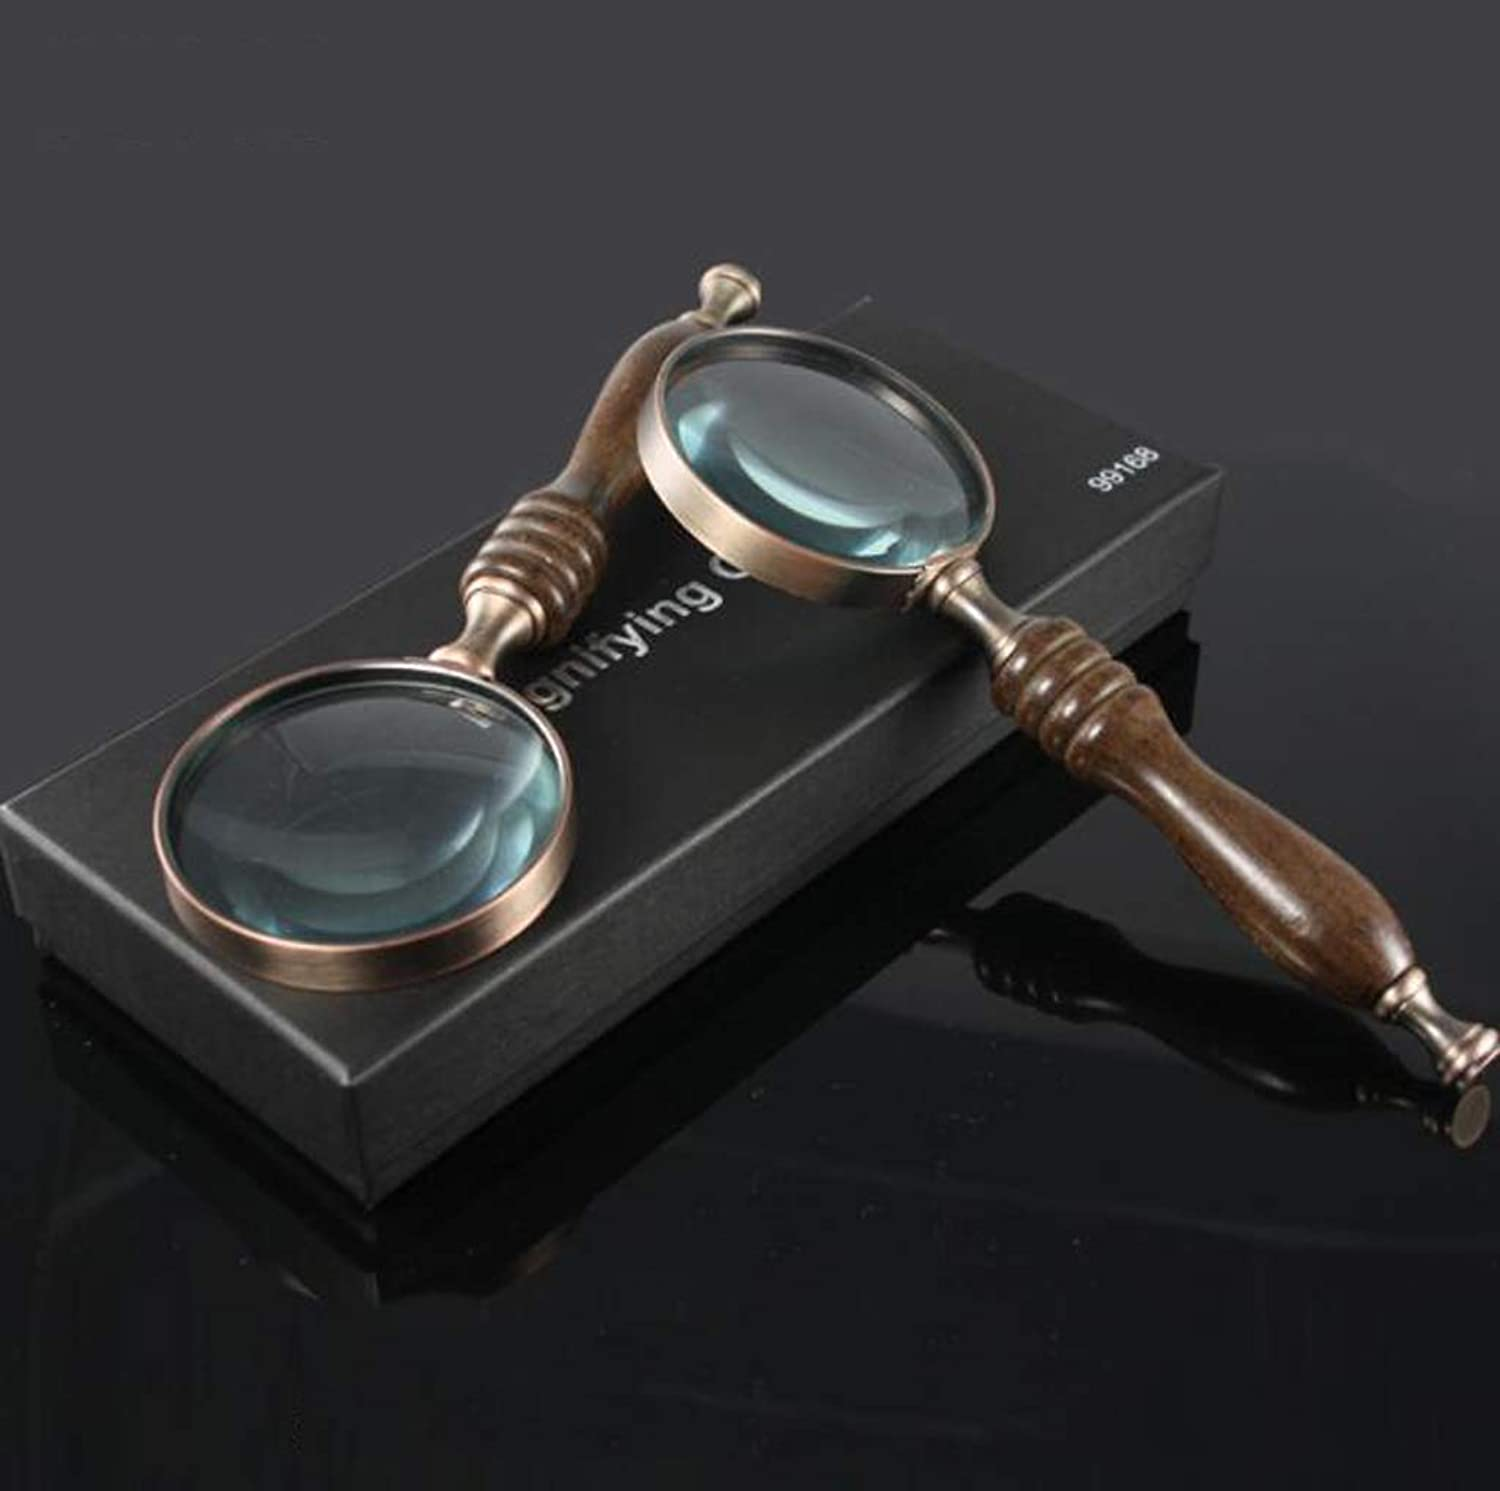 Magnifying Glass, Ebony Handle, Vintage Collection, Gift, 10 Times, Hand-Held, Portable Optical Glass Lens